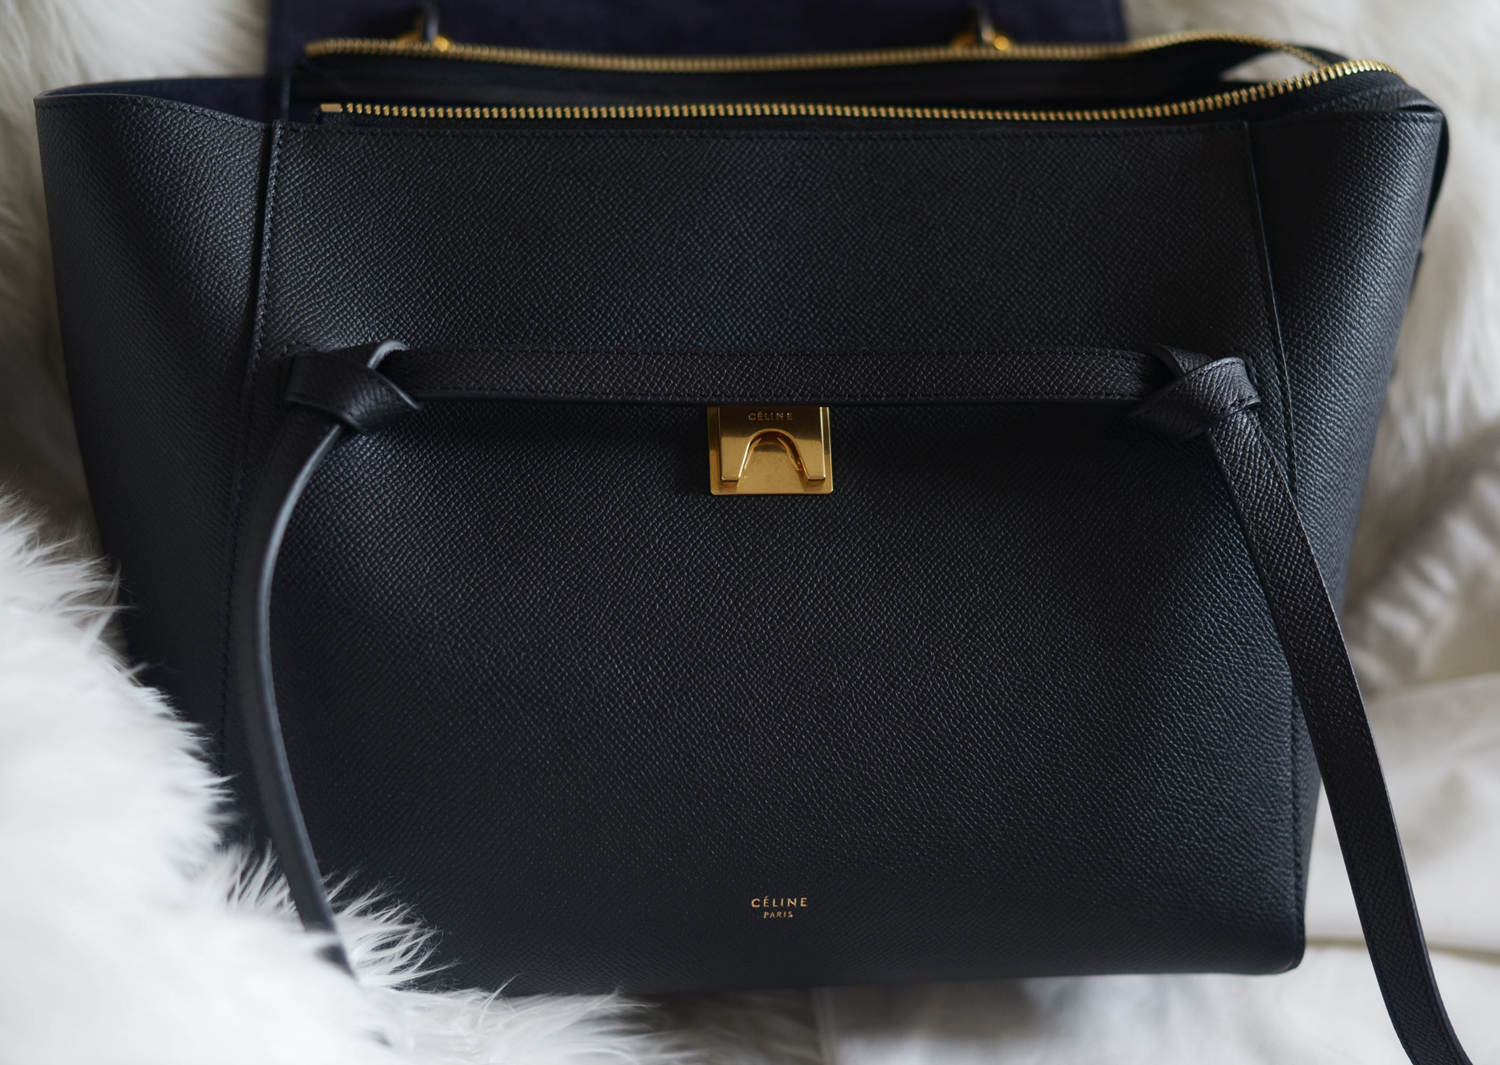 Celine Belt Bag Black Grained Leather | FOREVERVANNY.com